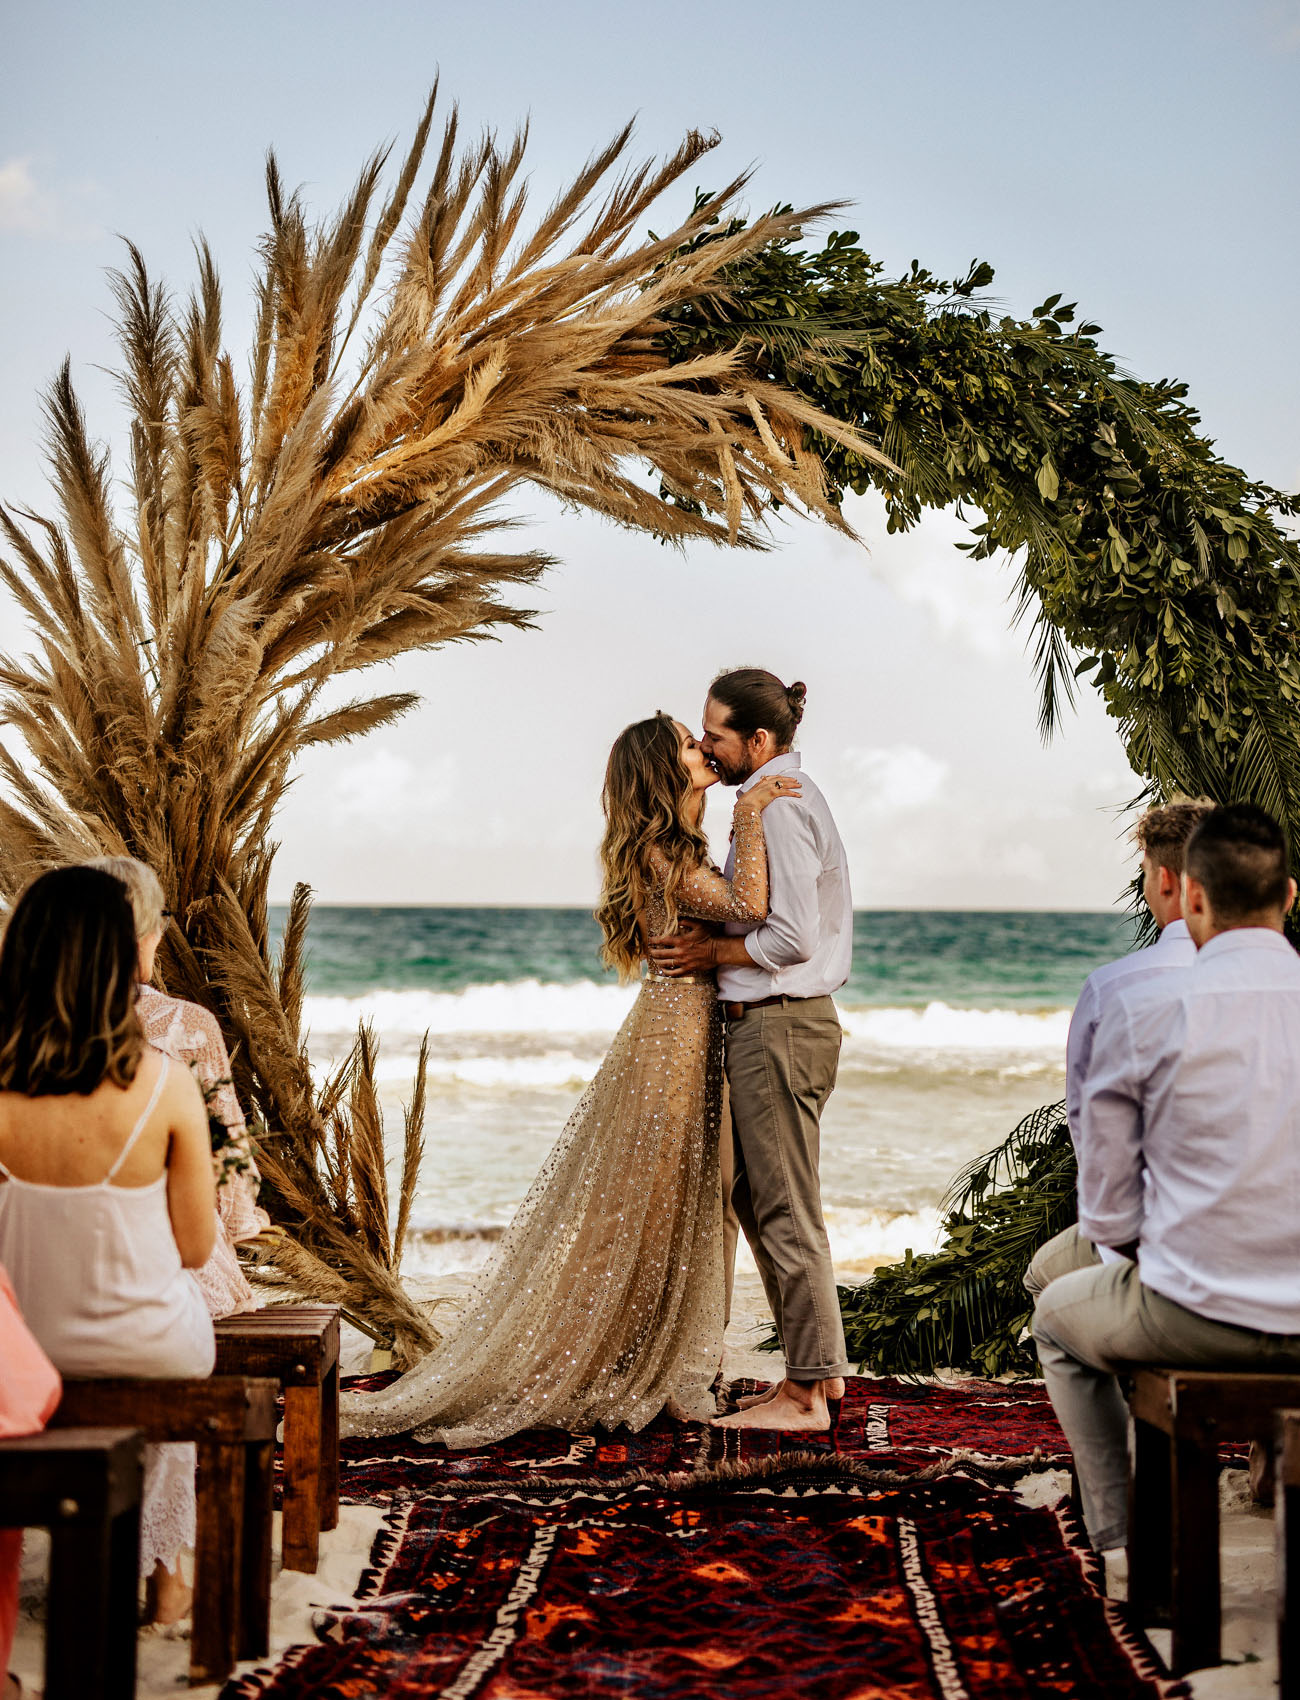 The ocean wedding backdrop was amazing for these nuptials